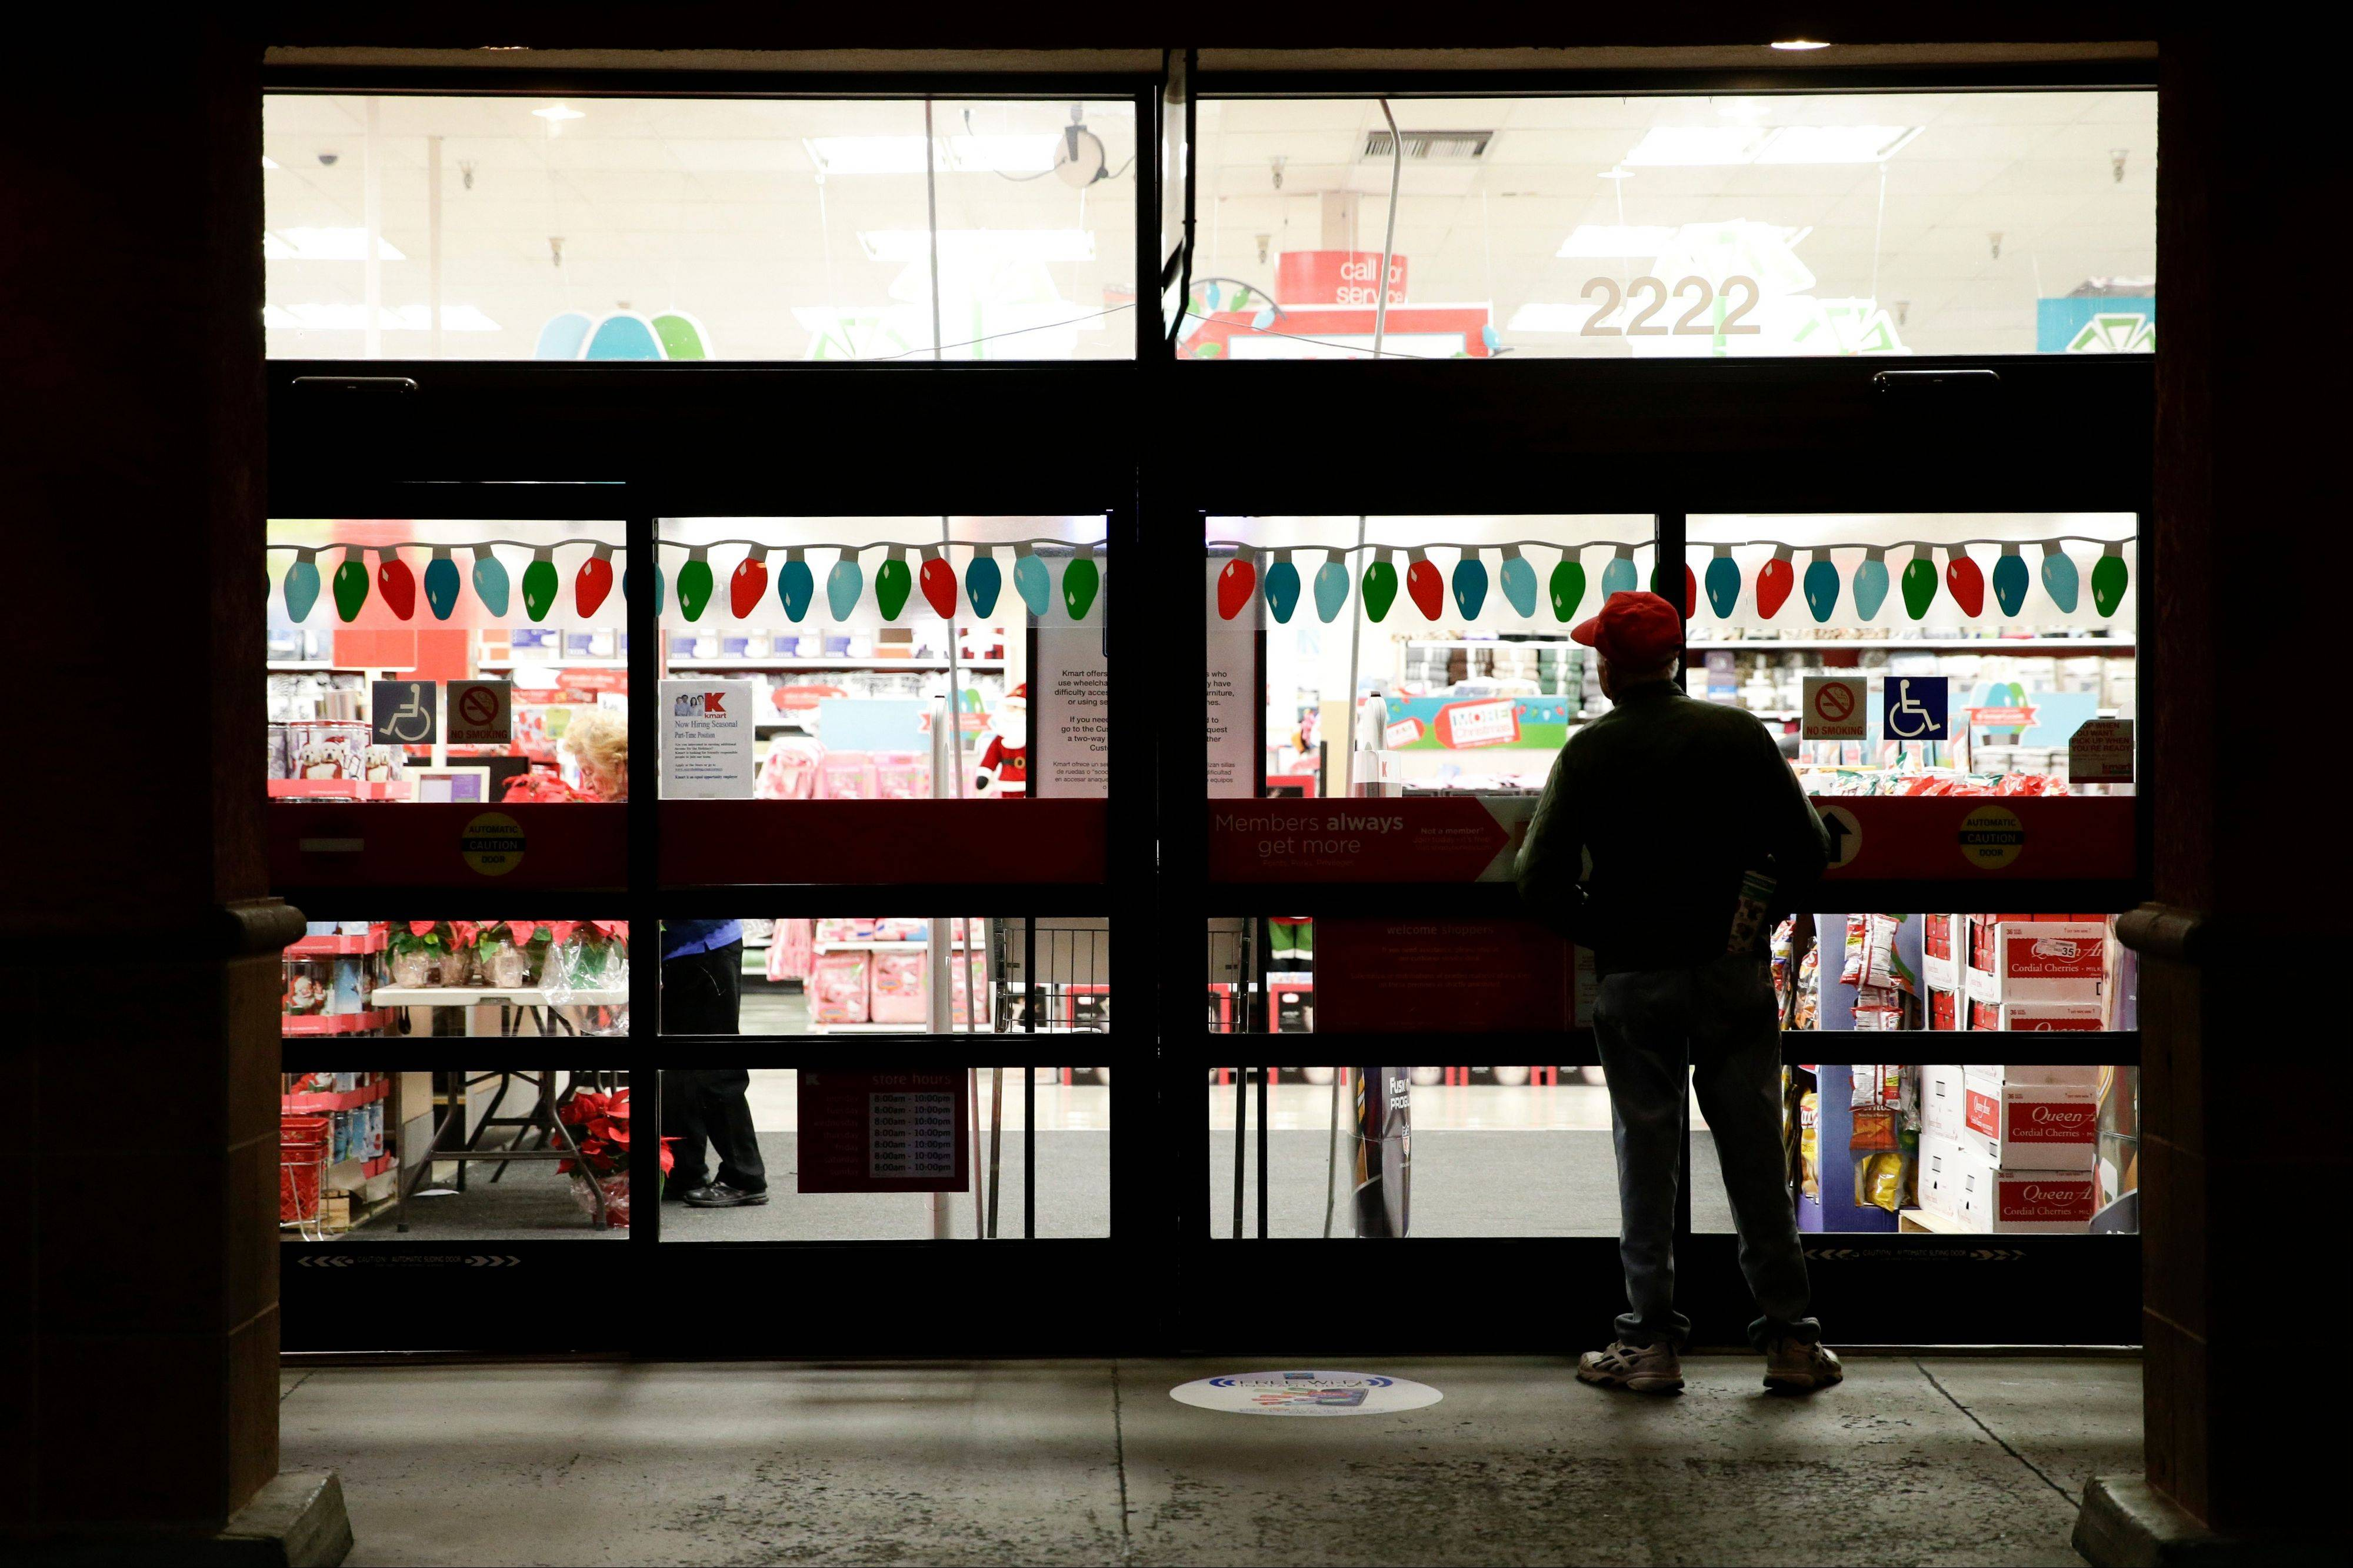 A shopper waits outside a Kmart store for it to open in Anaheim, Calif.